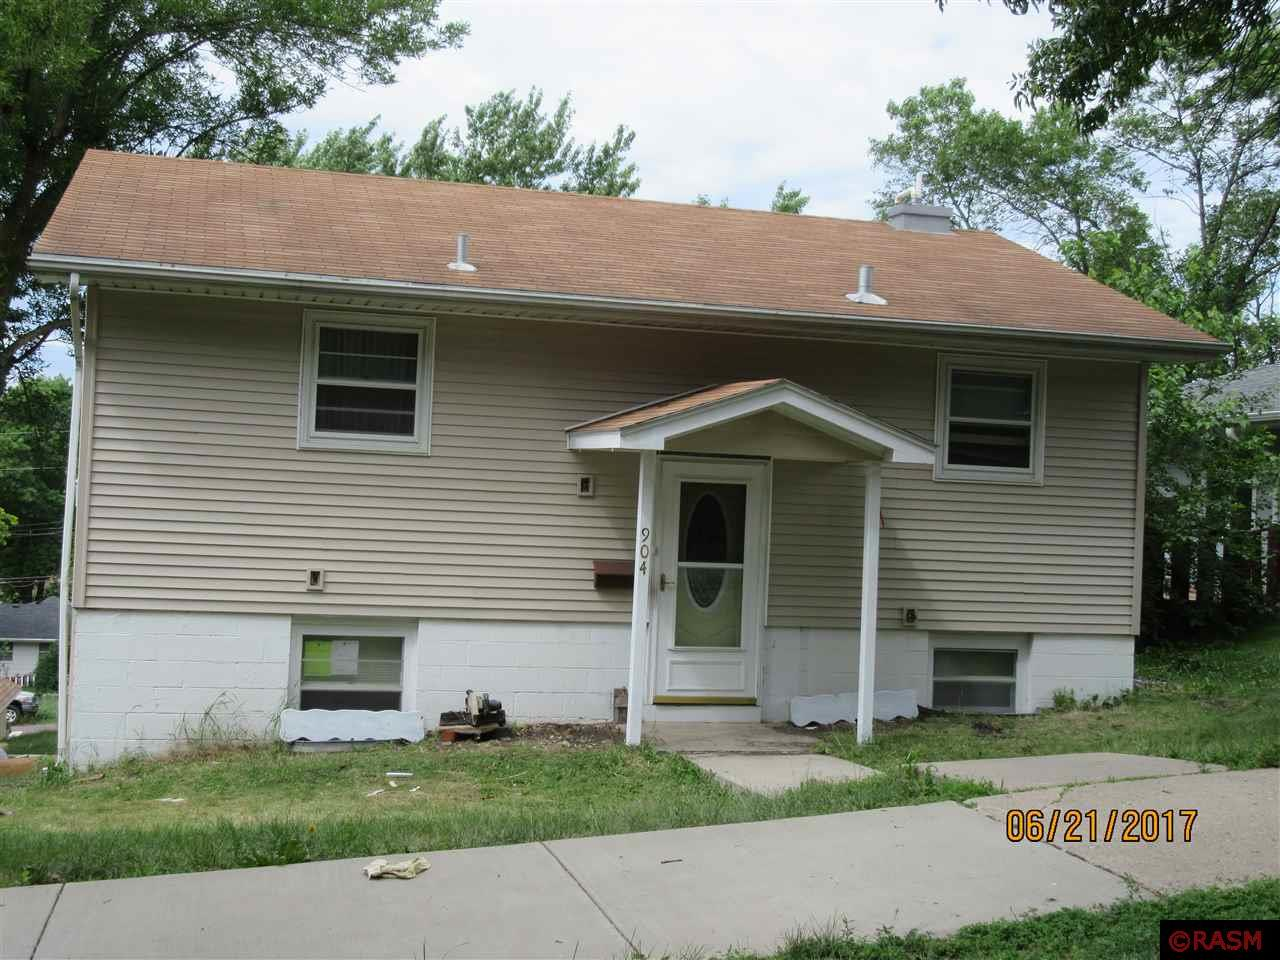 This functional bi-level split is move-in ready and has 3 bedrooms, 2 bathrooms located in New Ulm.  Double detached garage with fenced in backyard ready for you to enjoy!  This home is currently having new siding put on.  Call today for a private showing!